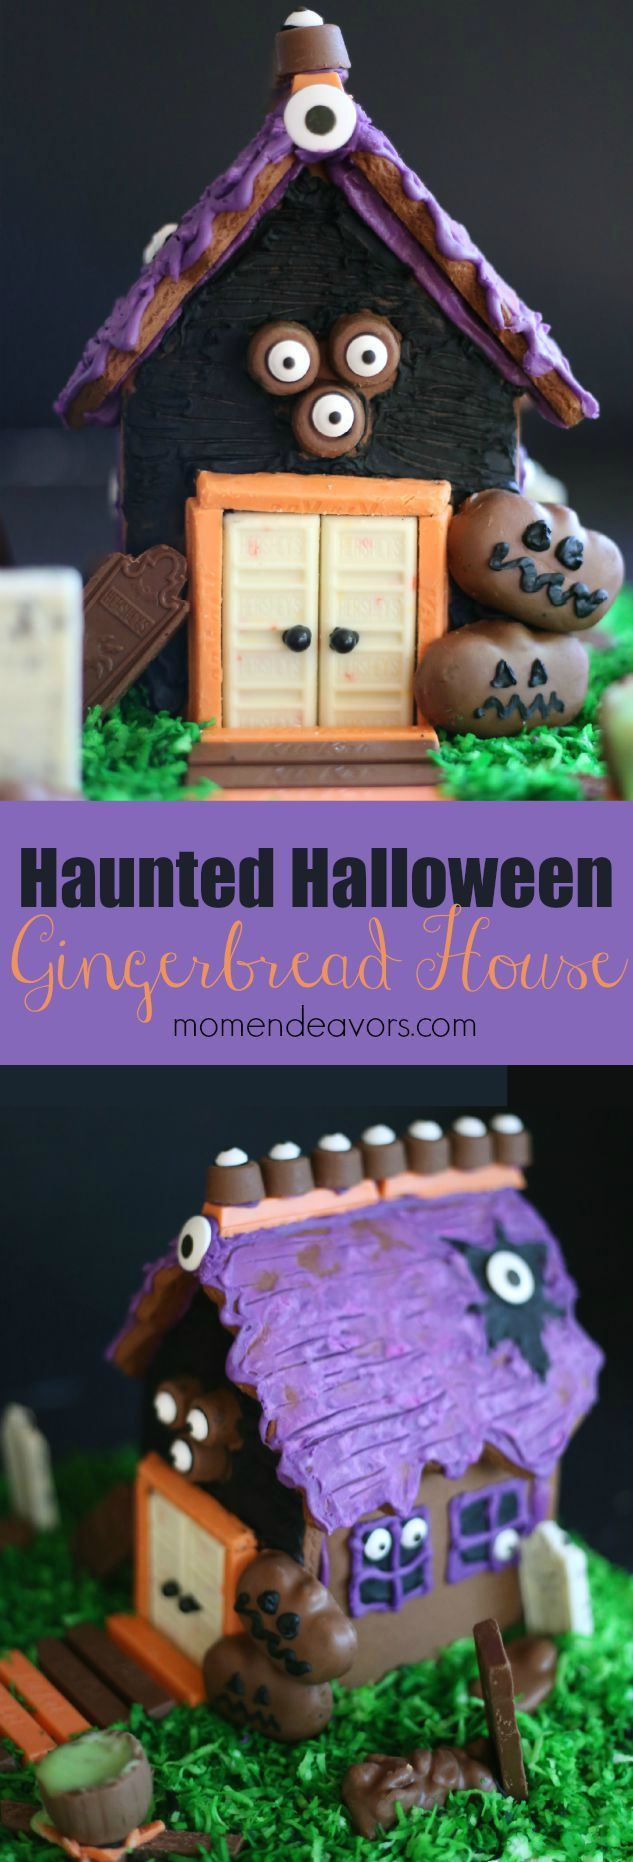 Halloween Candy Gingerbread House - such a fun way to use Halloween candy! #HersheysHalloween #sponsored